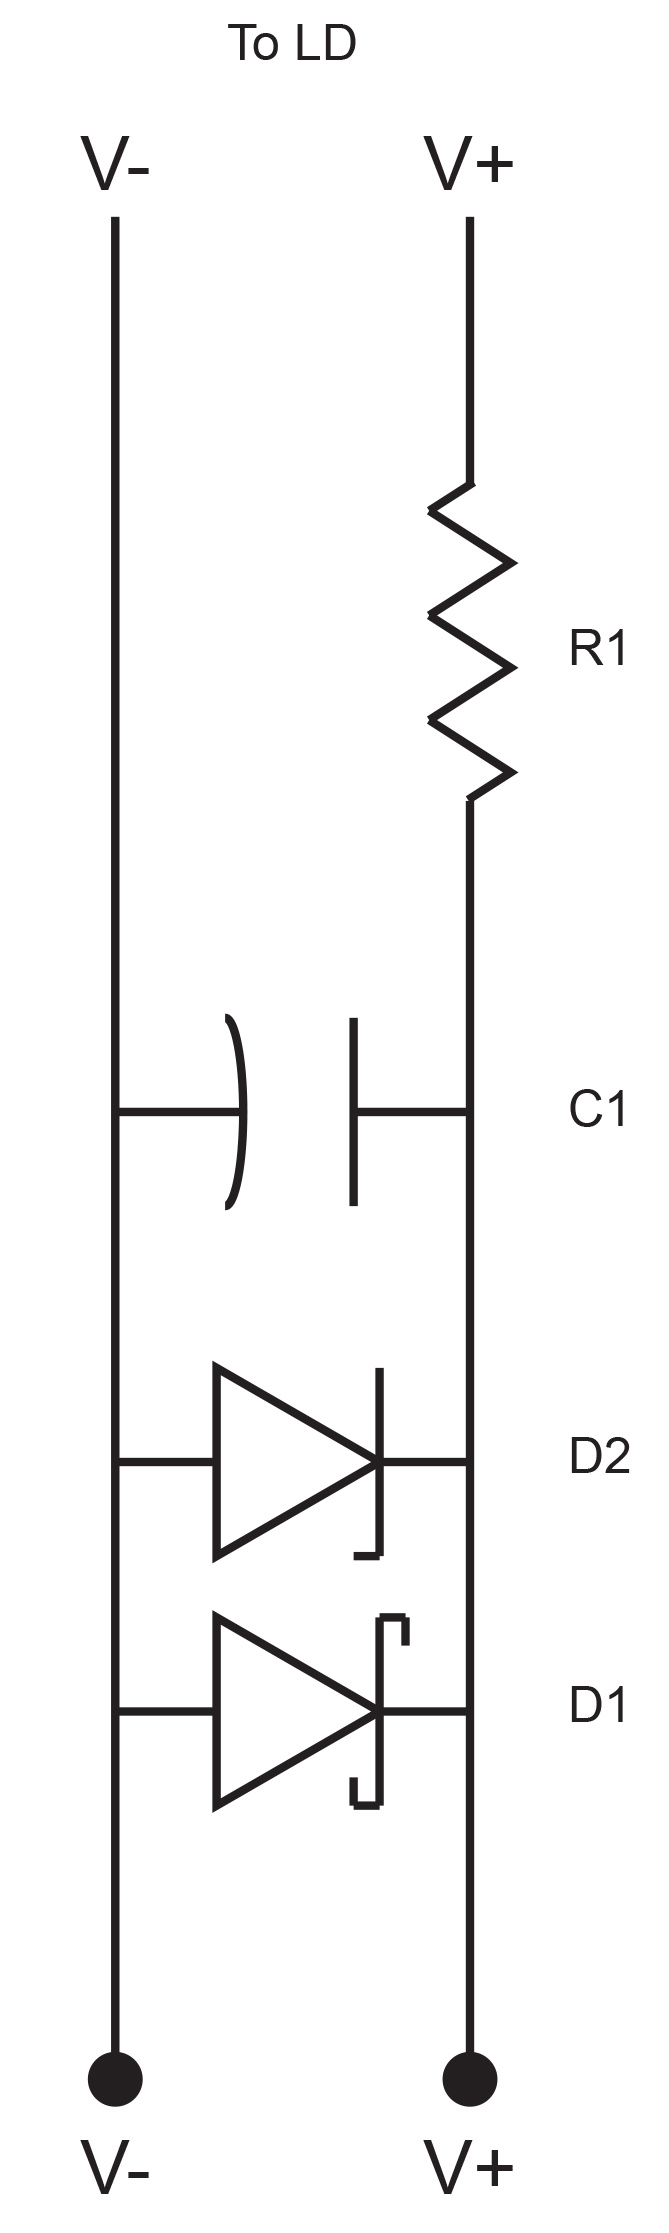 laser diode protection circuit  example protection circuit for the laser  diode current  r1 and c1 form a basic rc circuit and will filter out high  frequency